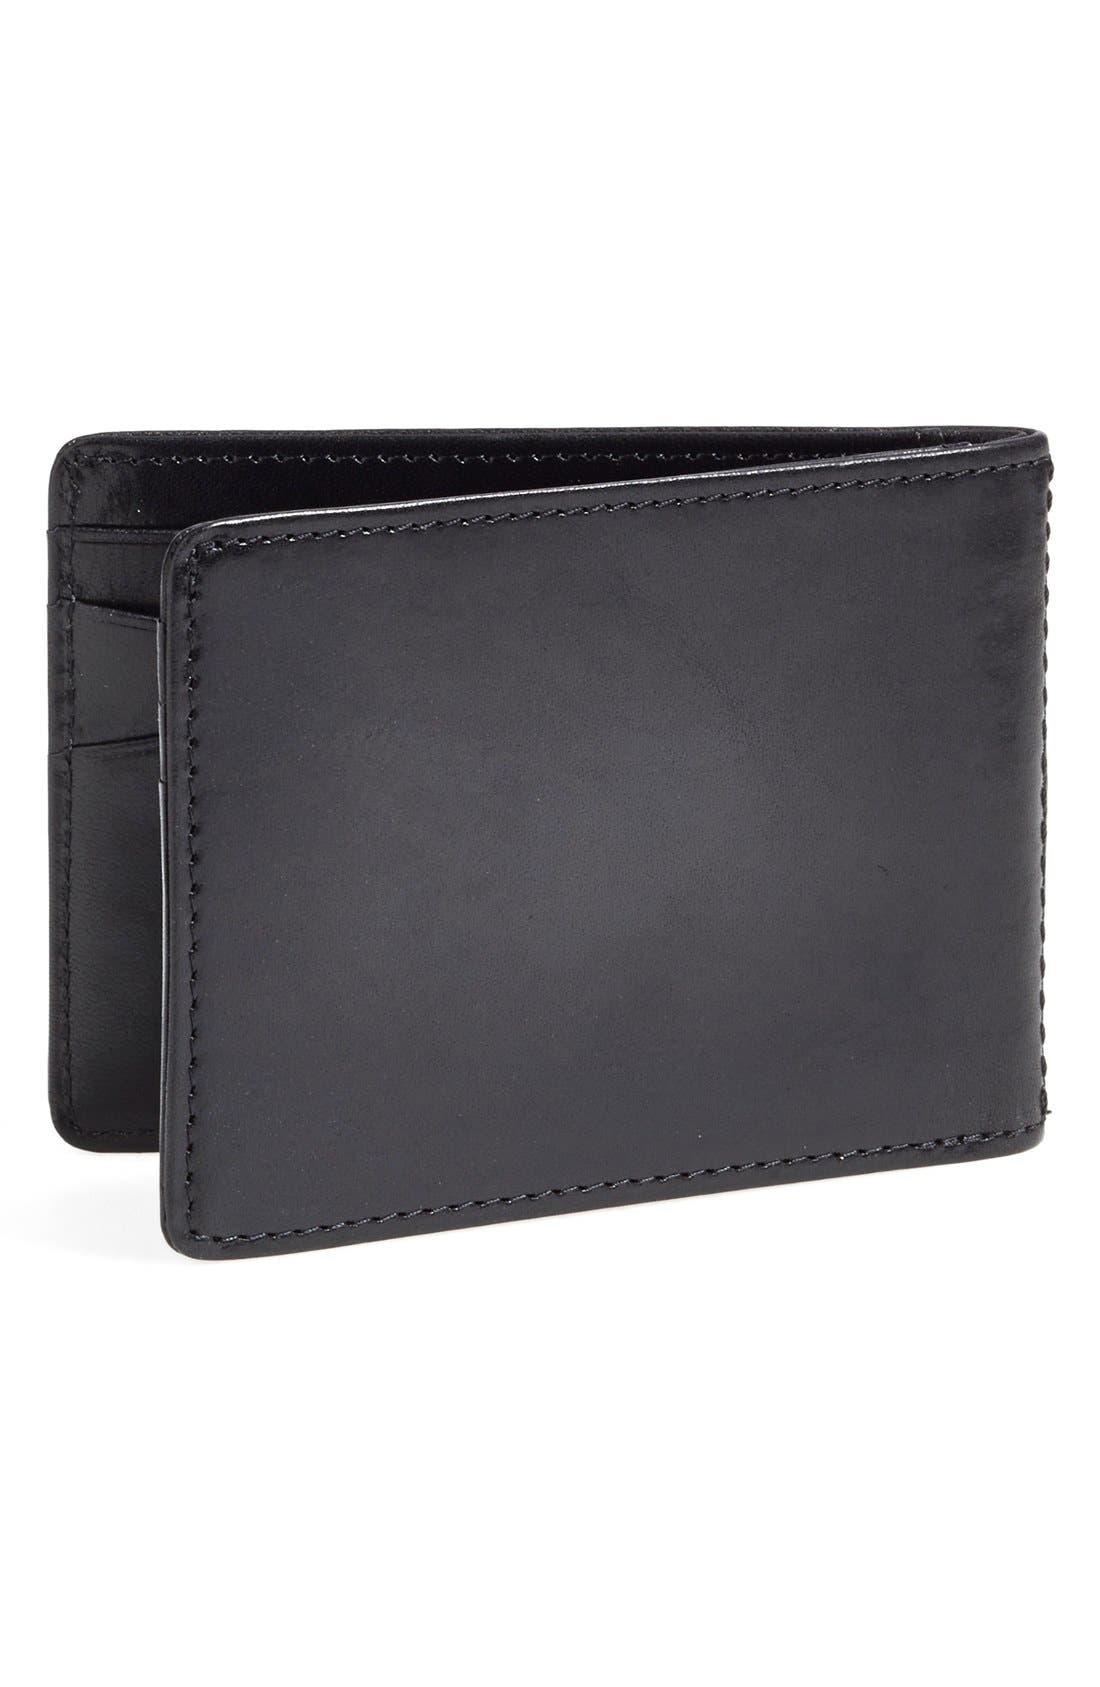 Small Bifold Wallet,                             Alternate thumbnail 9, color,